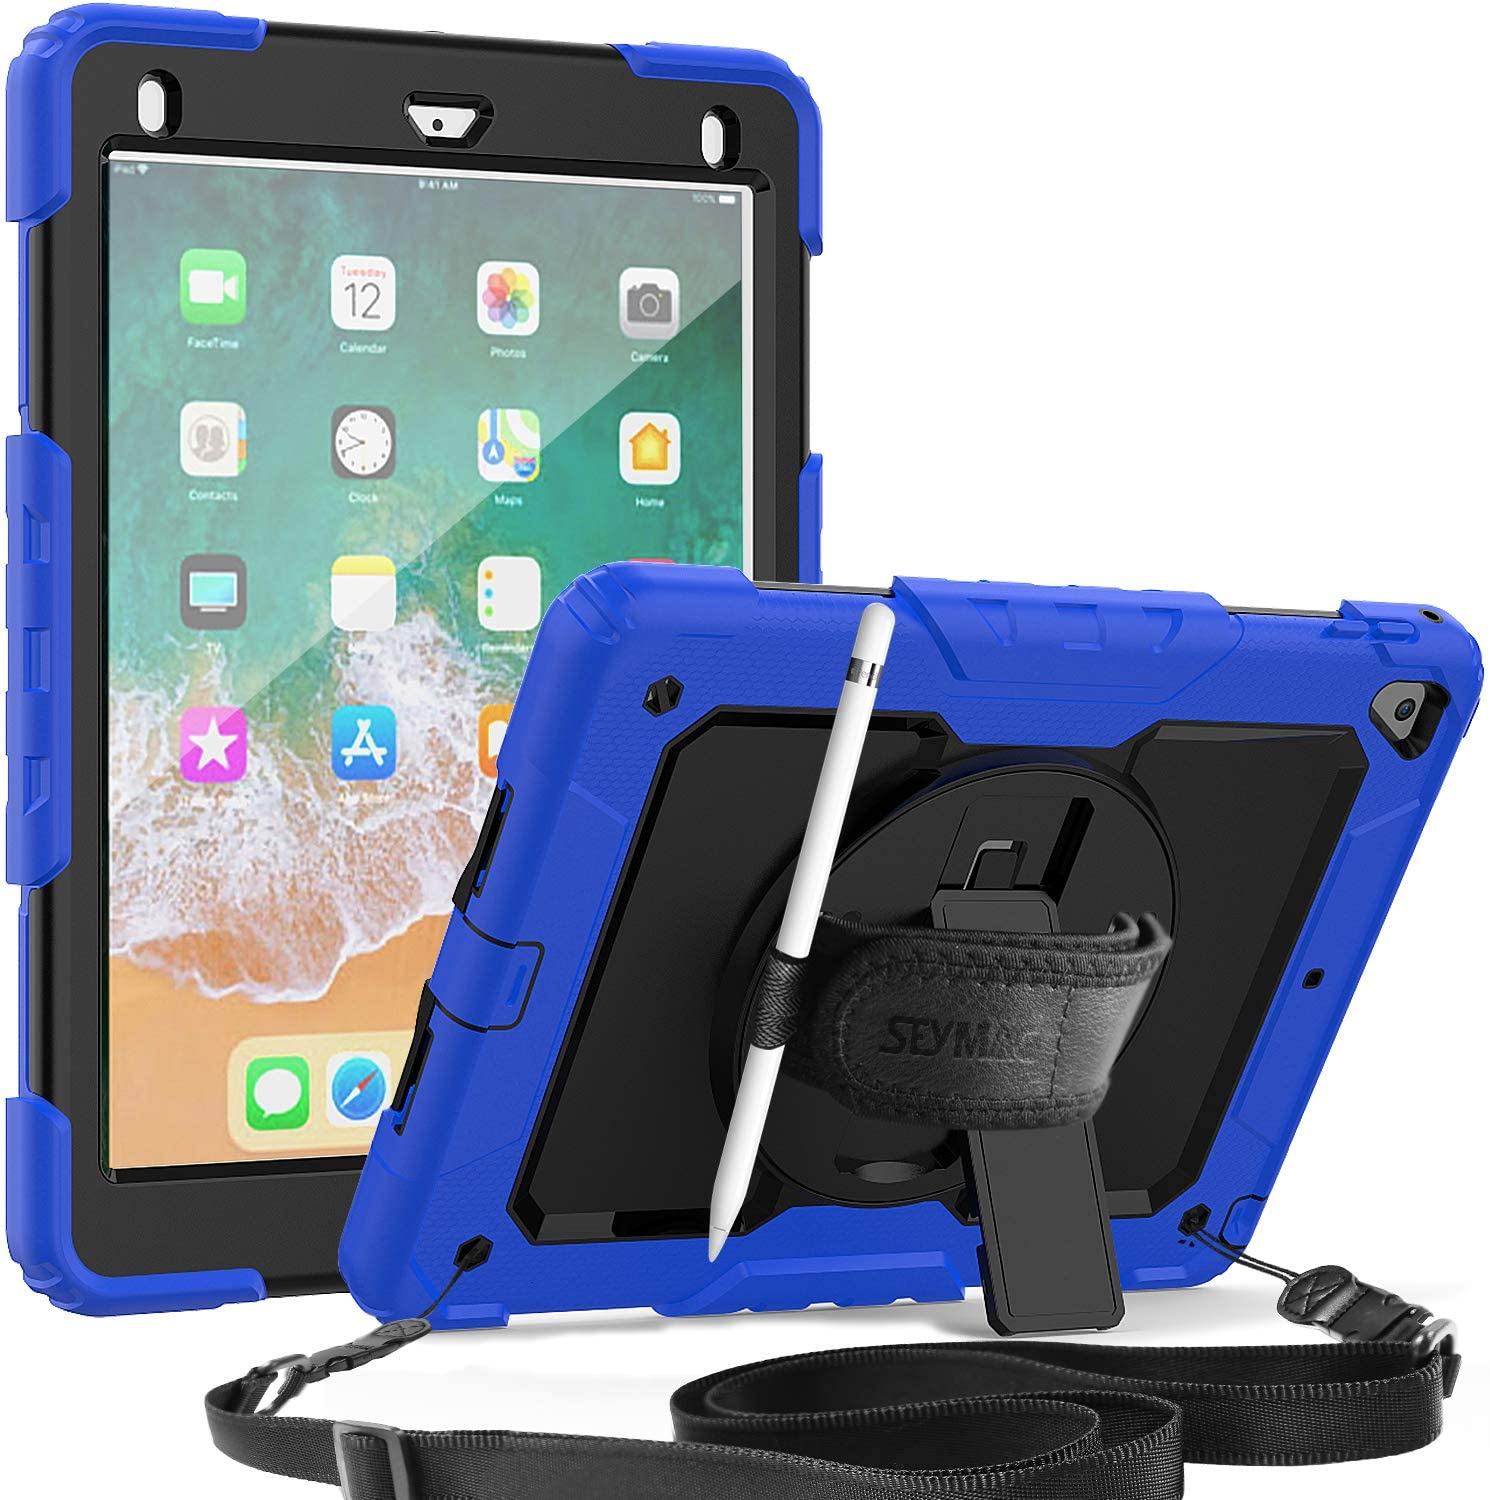 SEYMAC iPad 6th Cases, iPad 9.7 2018/2017 360 Rotatable Handstrap Kickstand Case Full-Body Protection Cover with Screen Protector/Pencil Holder/Shoulder Strap for iPad 6th/5th/Air2/Pro 9.7-Blue/Black